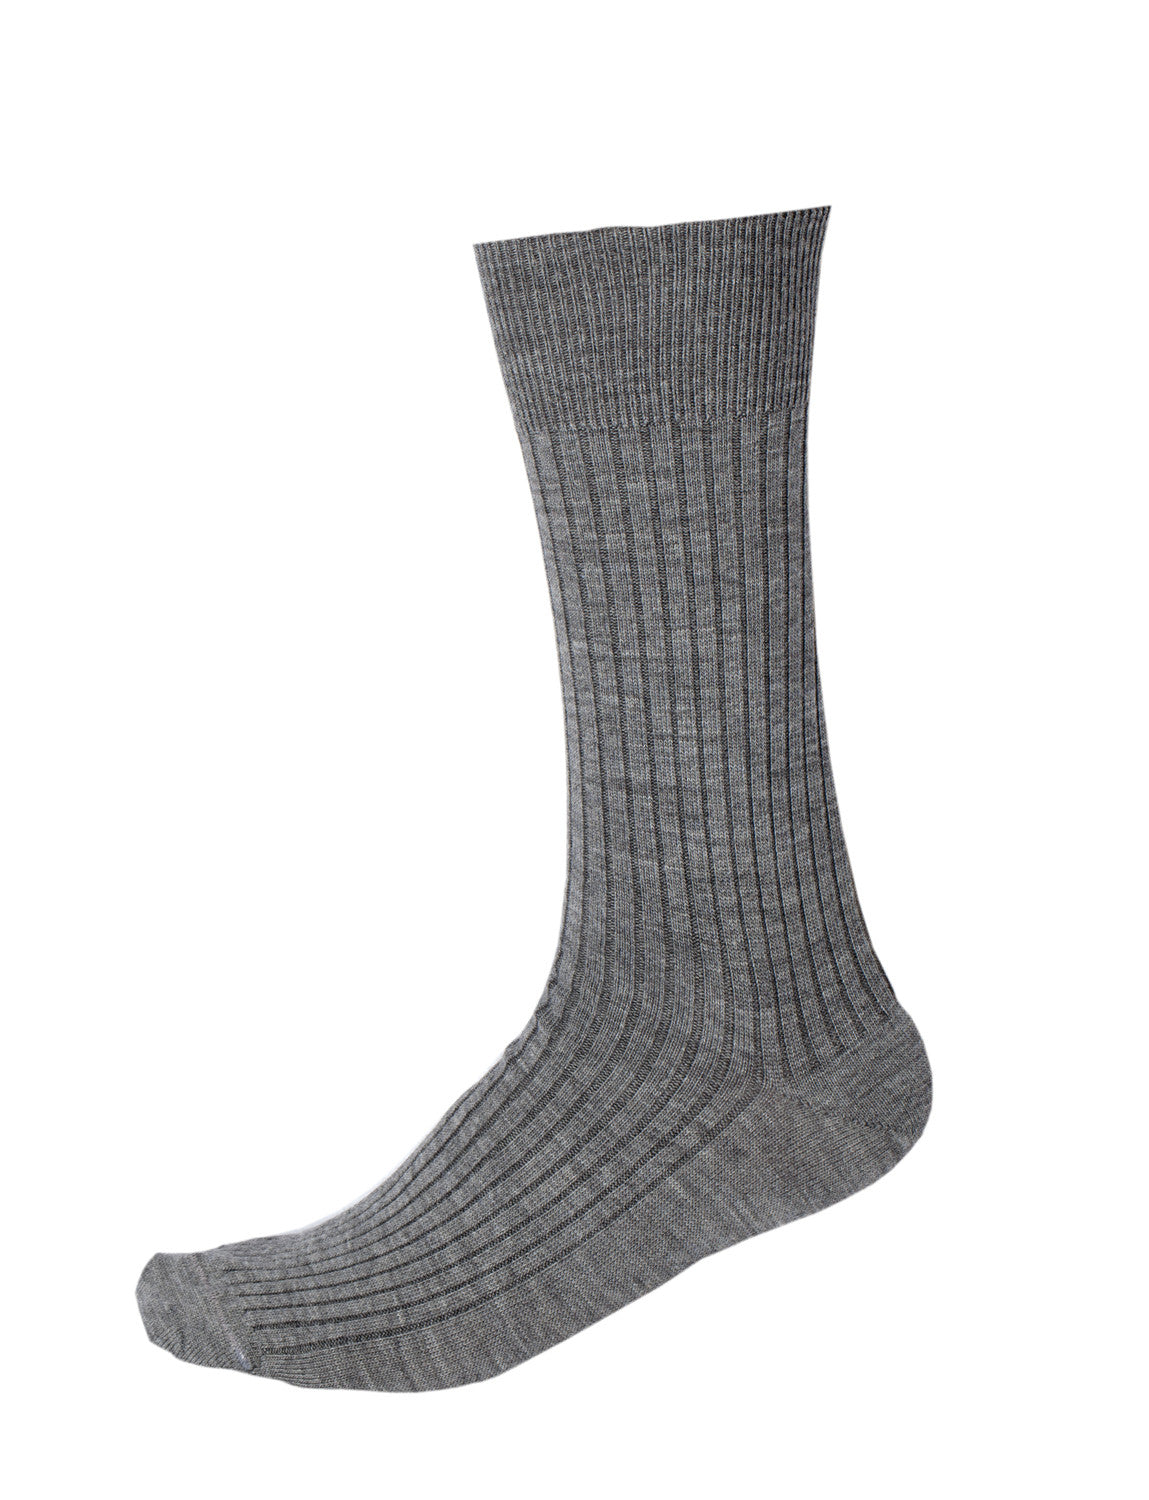 Pussyfoot Wool Non-Elastic Health Socks - Mid Grey